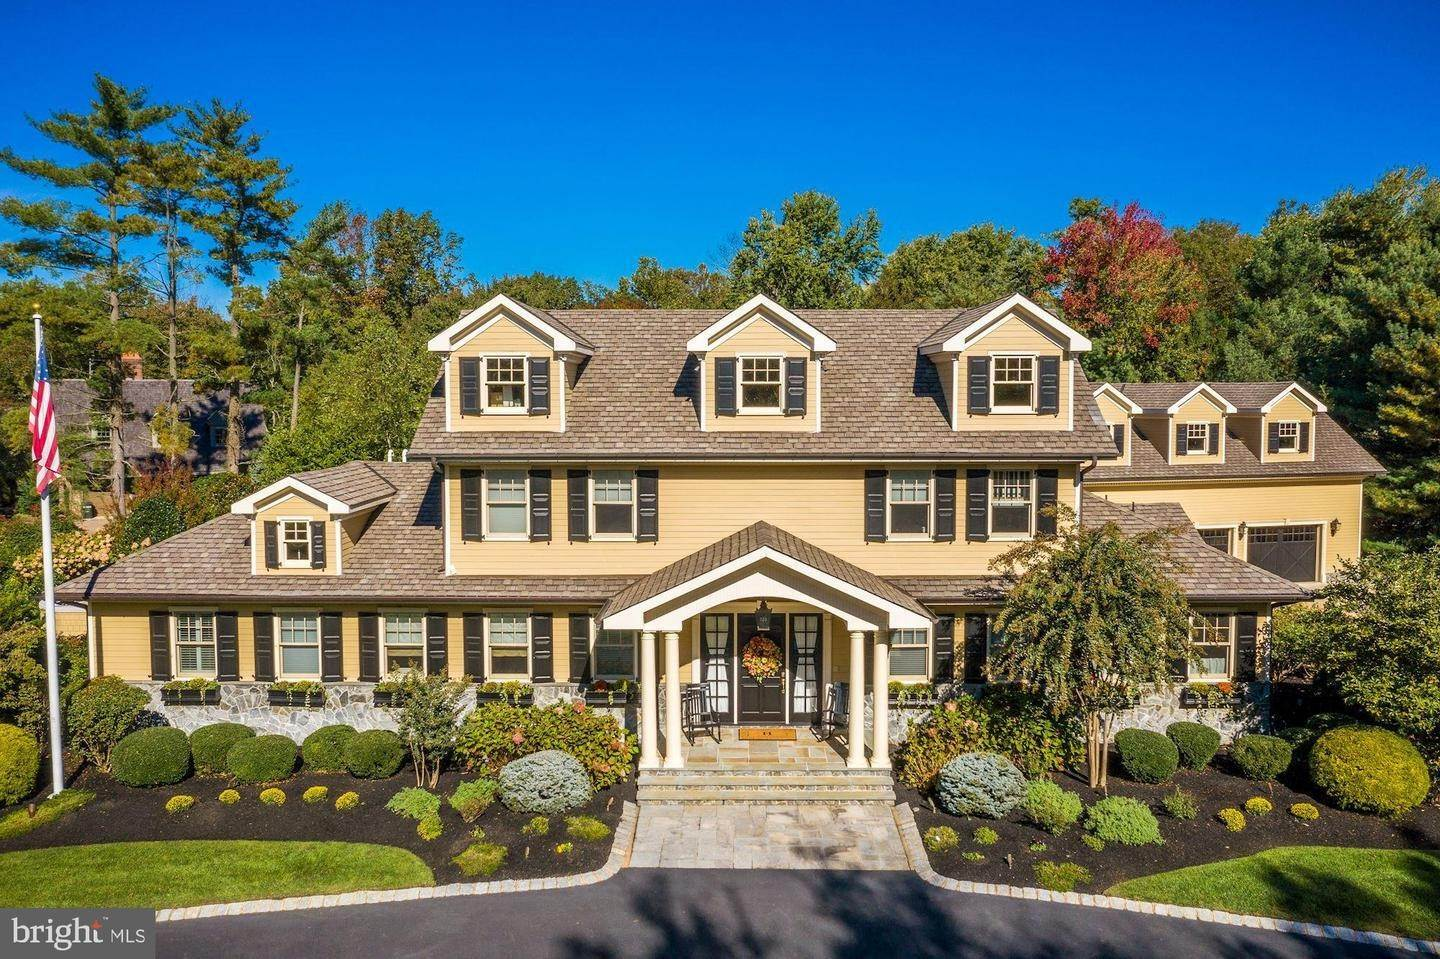 Detached House for Sale at 875 GOLF VIEW Road Moorestown, New Jersey 08057 United States